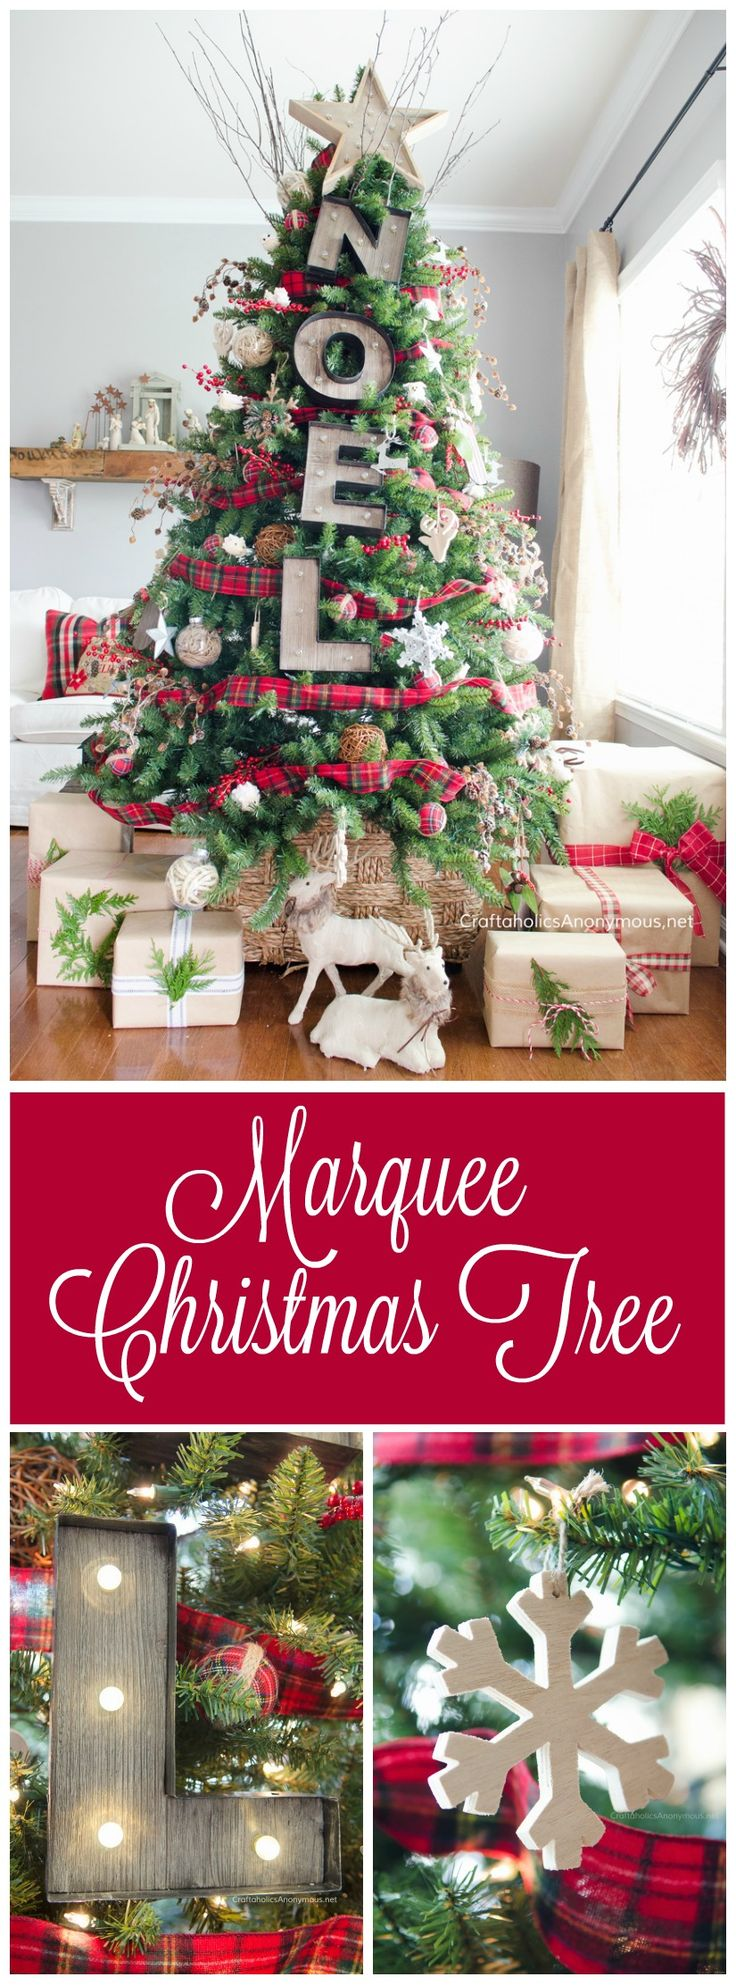 Marquee Christmas Tree DIY on www.CraftaholicsAnonymous.net. Love the idea to add marquee signs to a Christmas Tree!